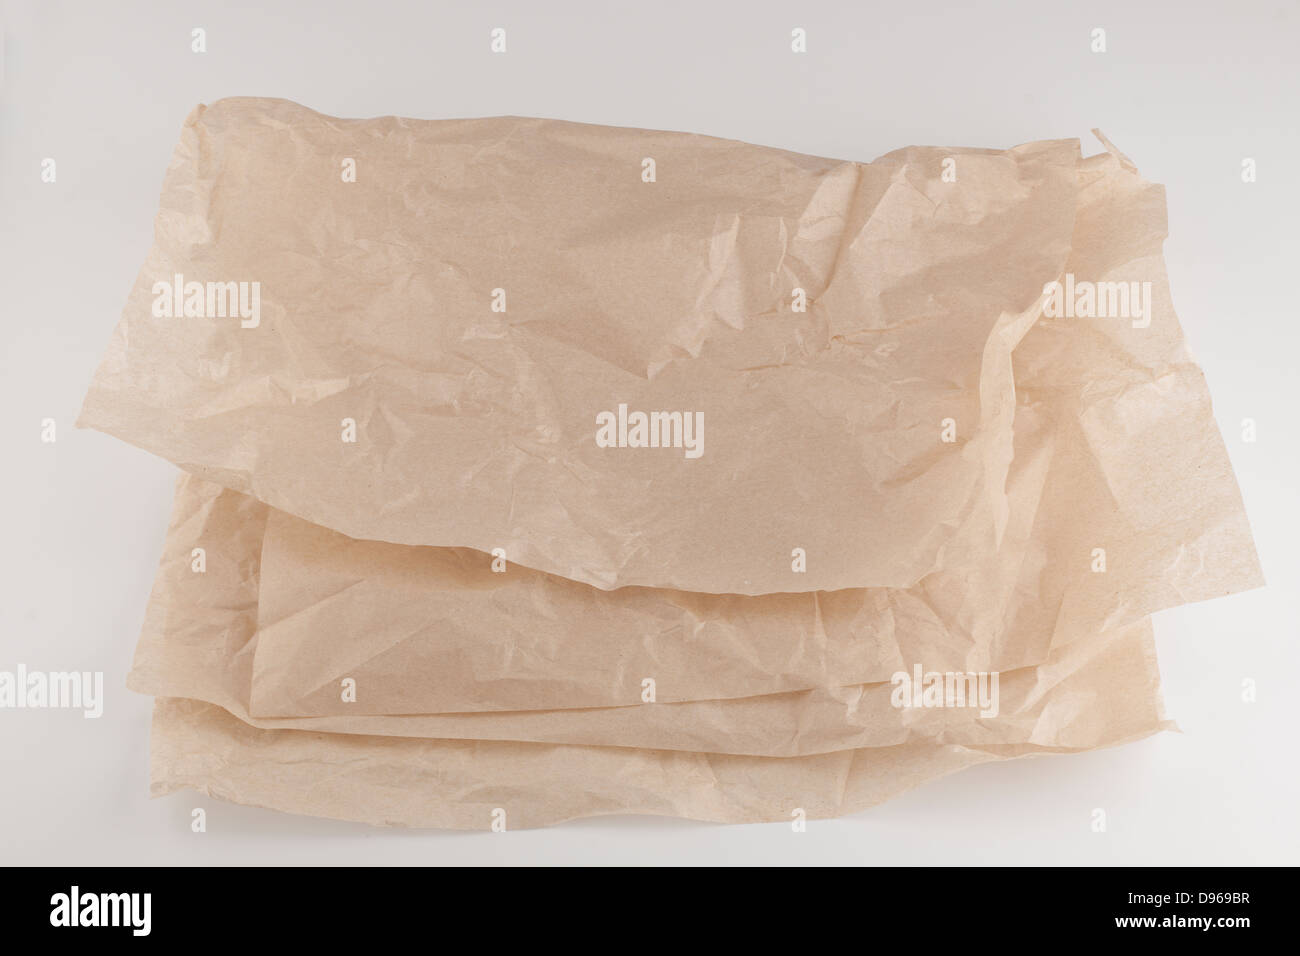 Two thin light sheets of folded brown packing paper - Stock Image